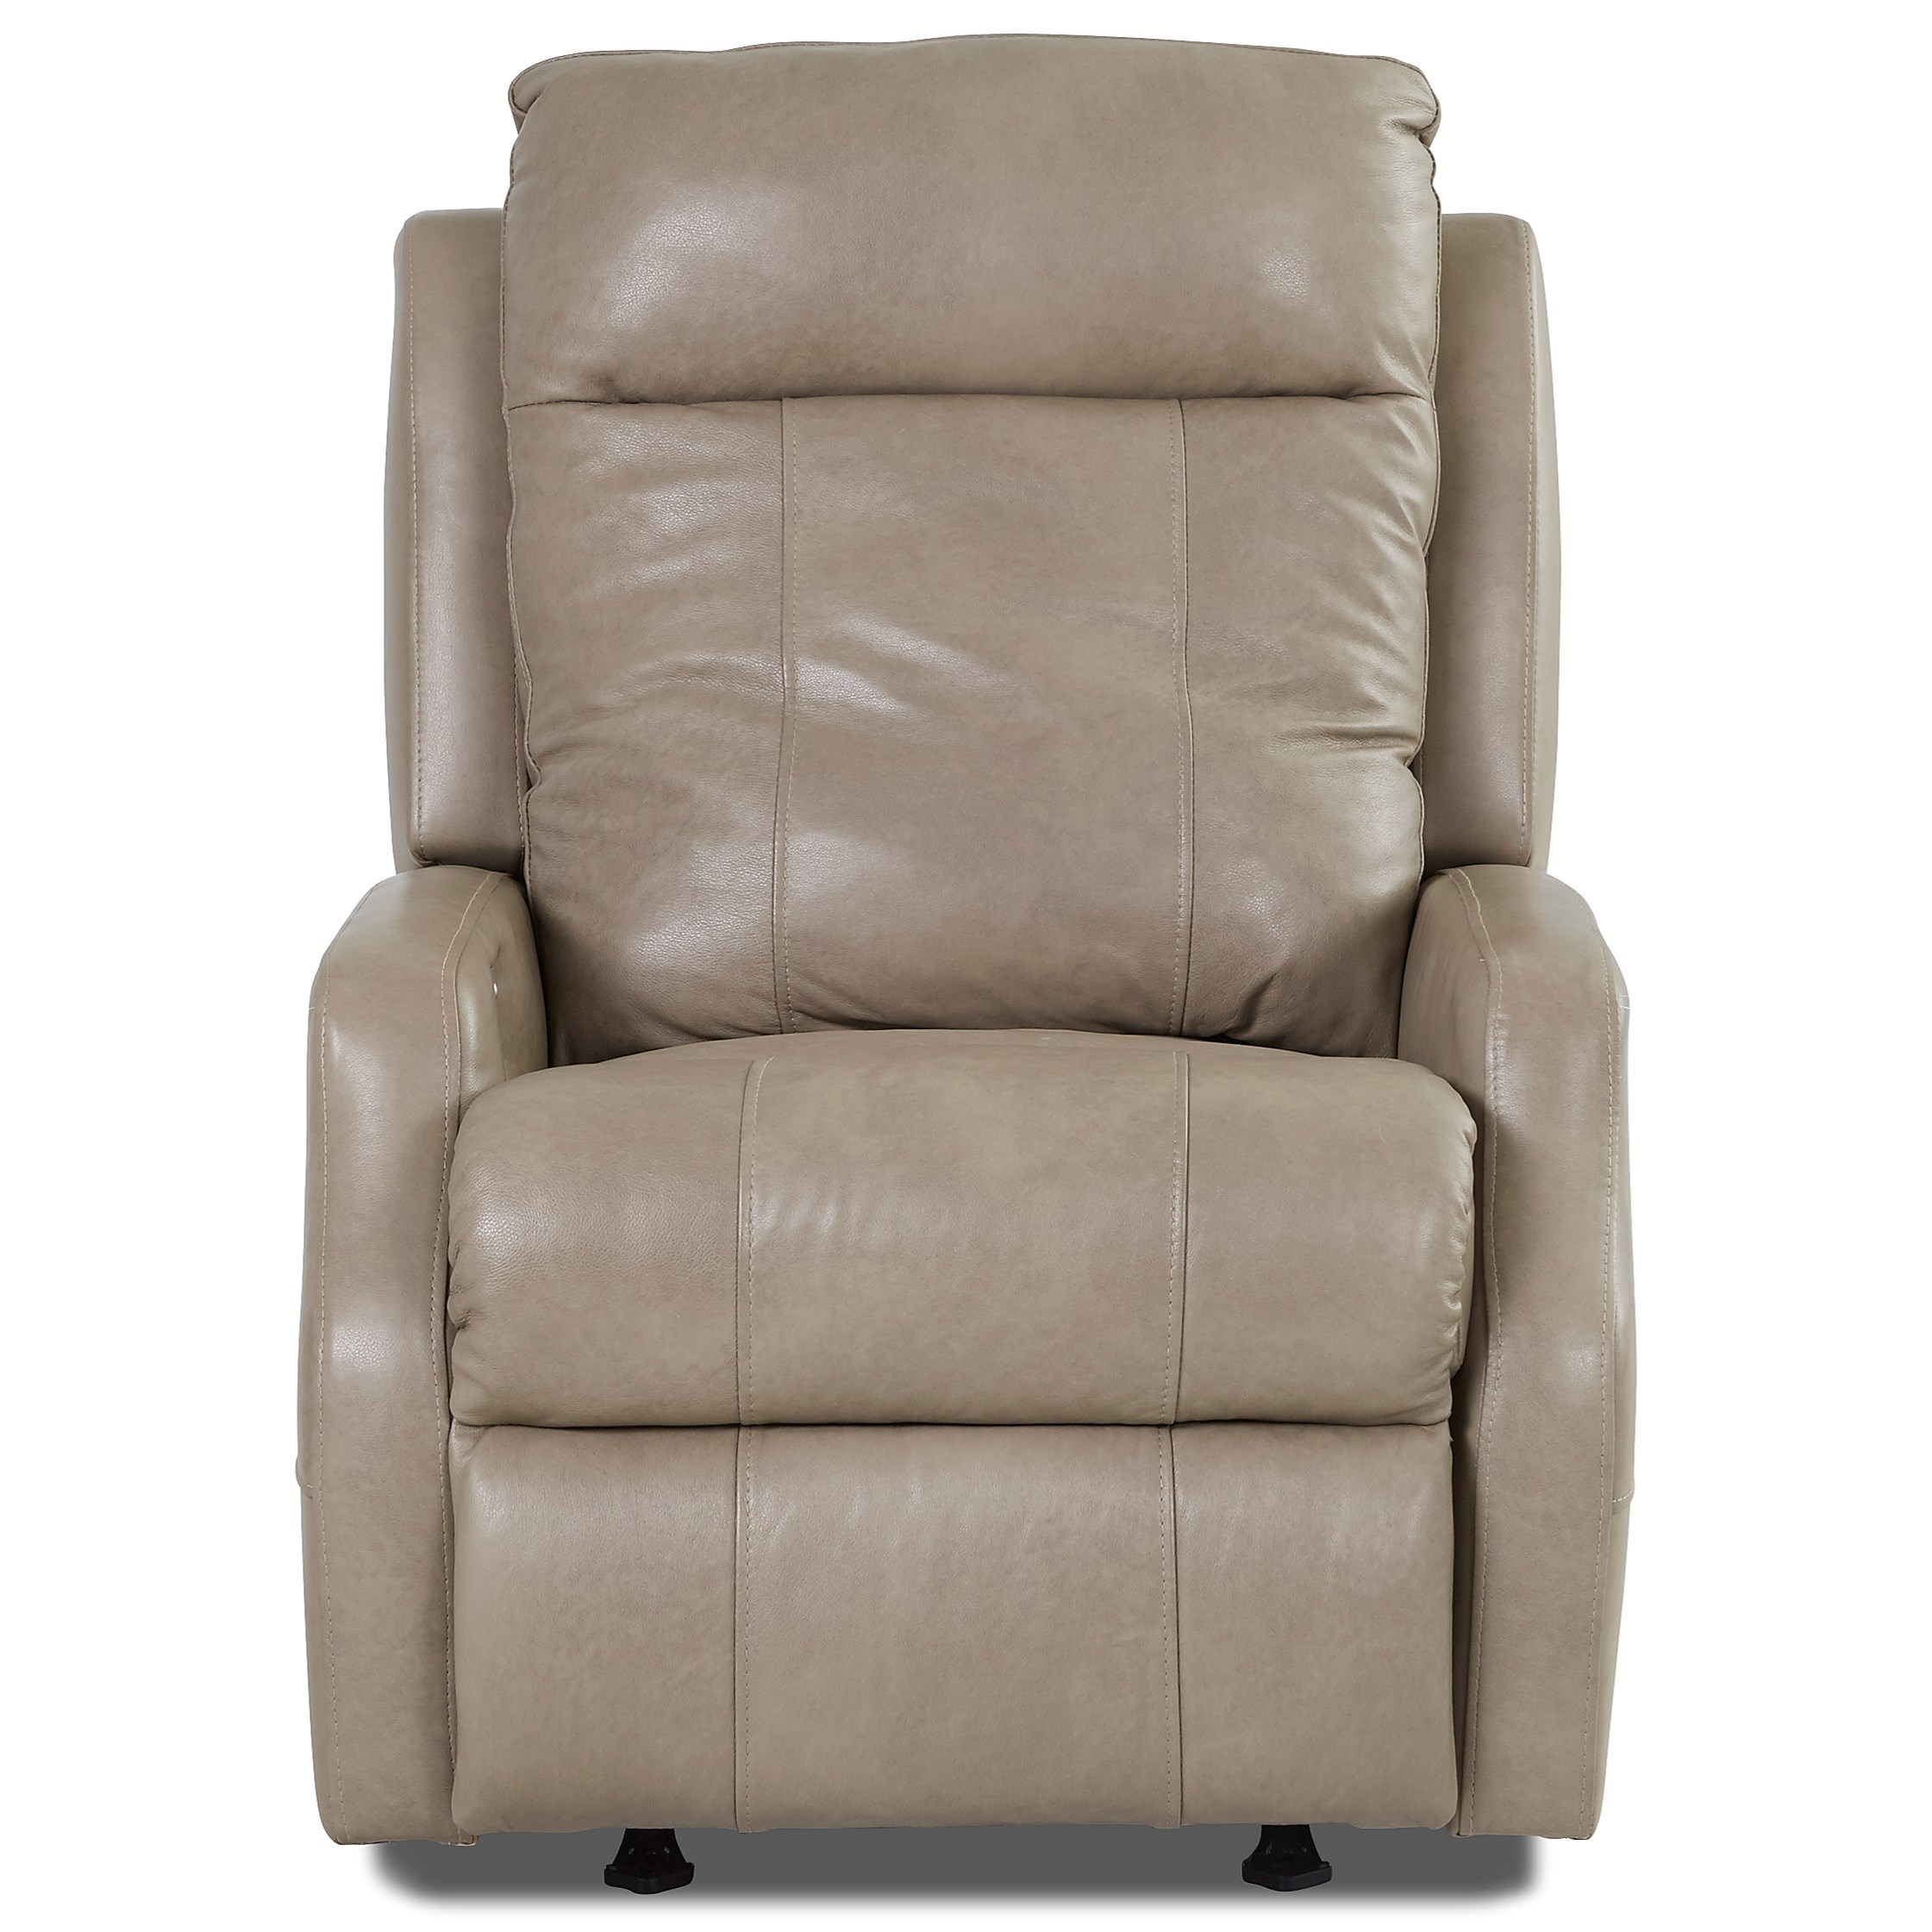 Mirra Reclining Chair by Klaussner at Lapeer Furniture & Mattress Center